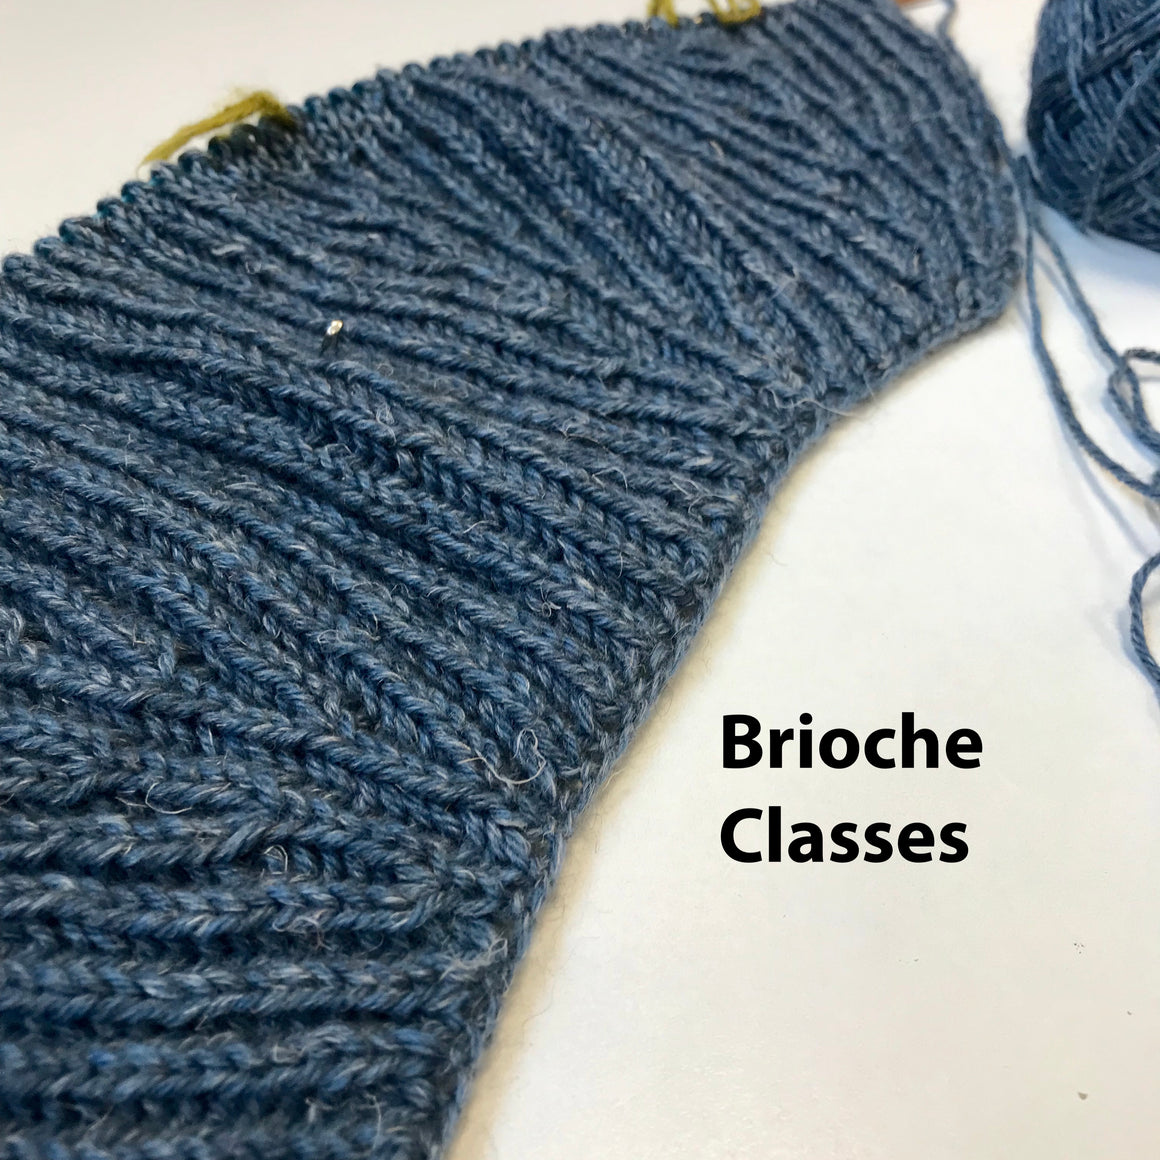 Brioche Classes - Cork, January 2019